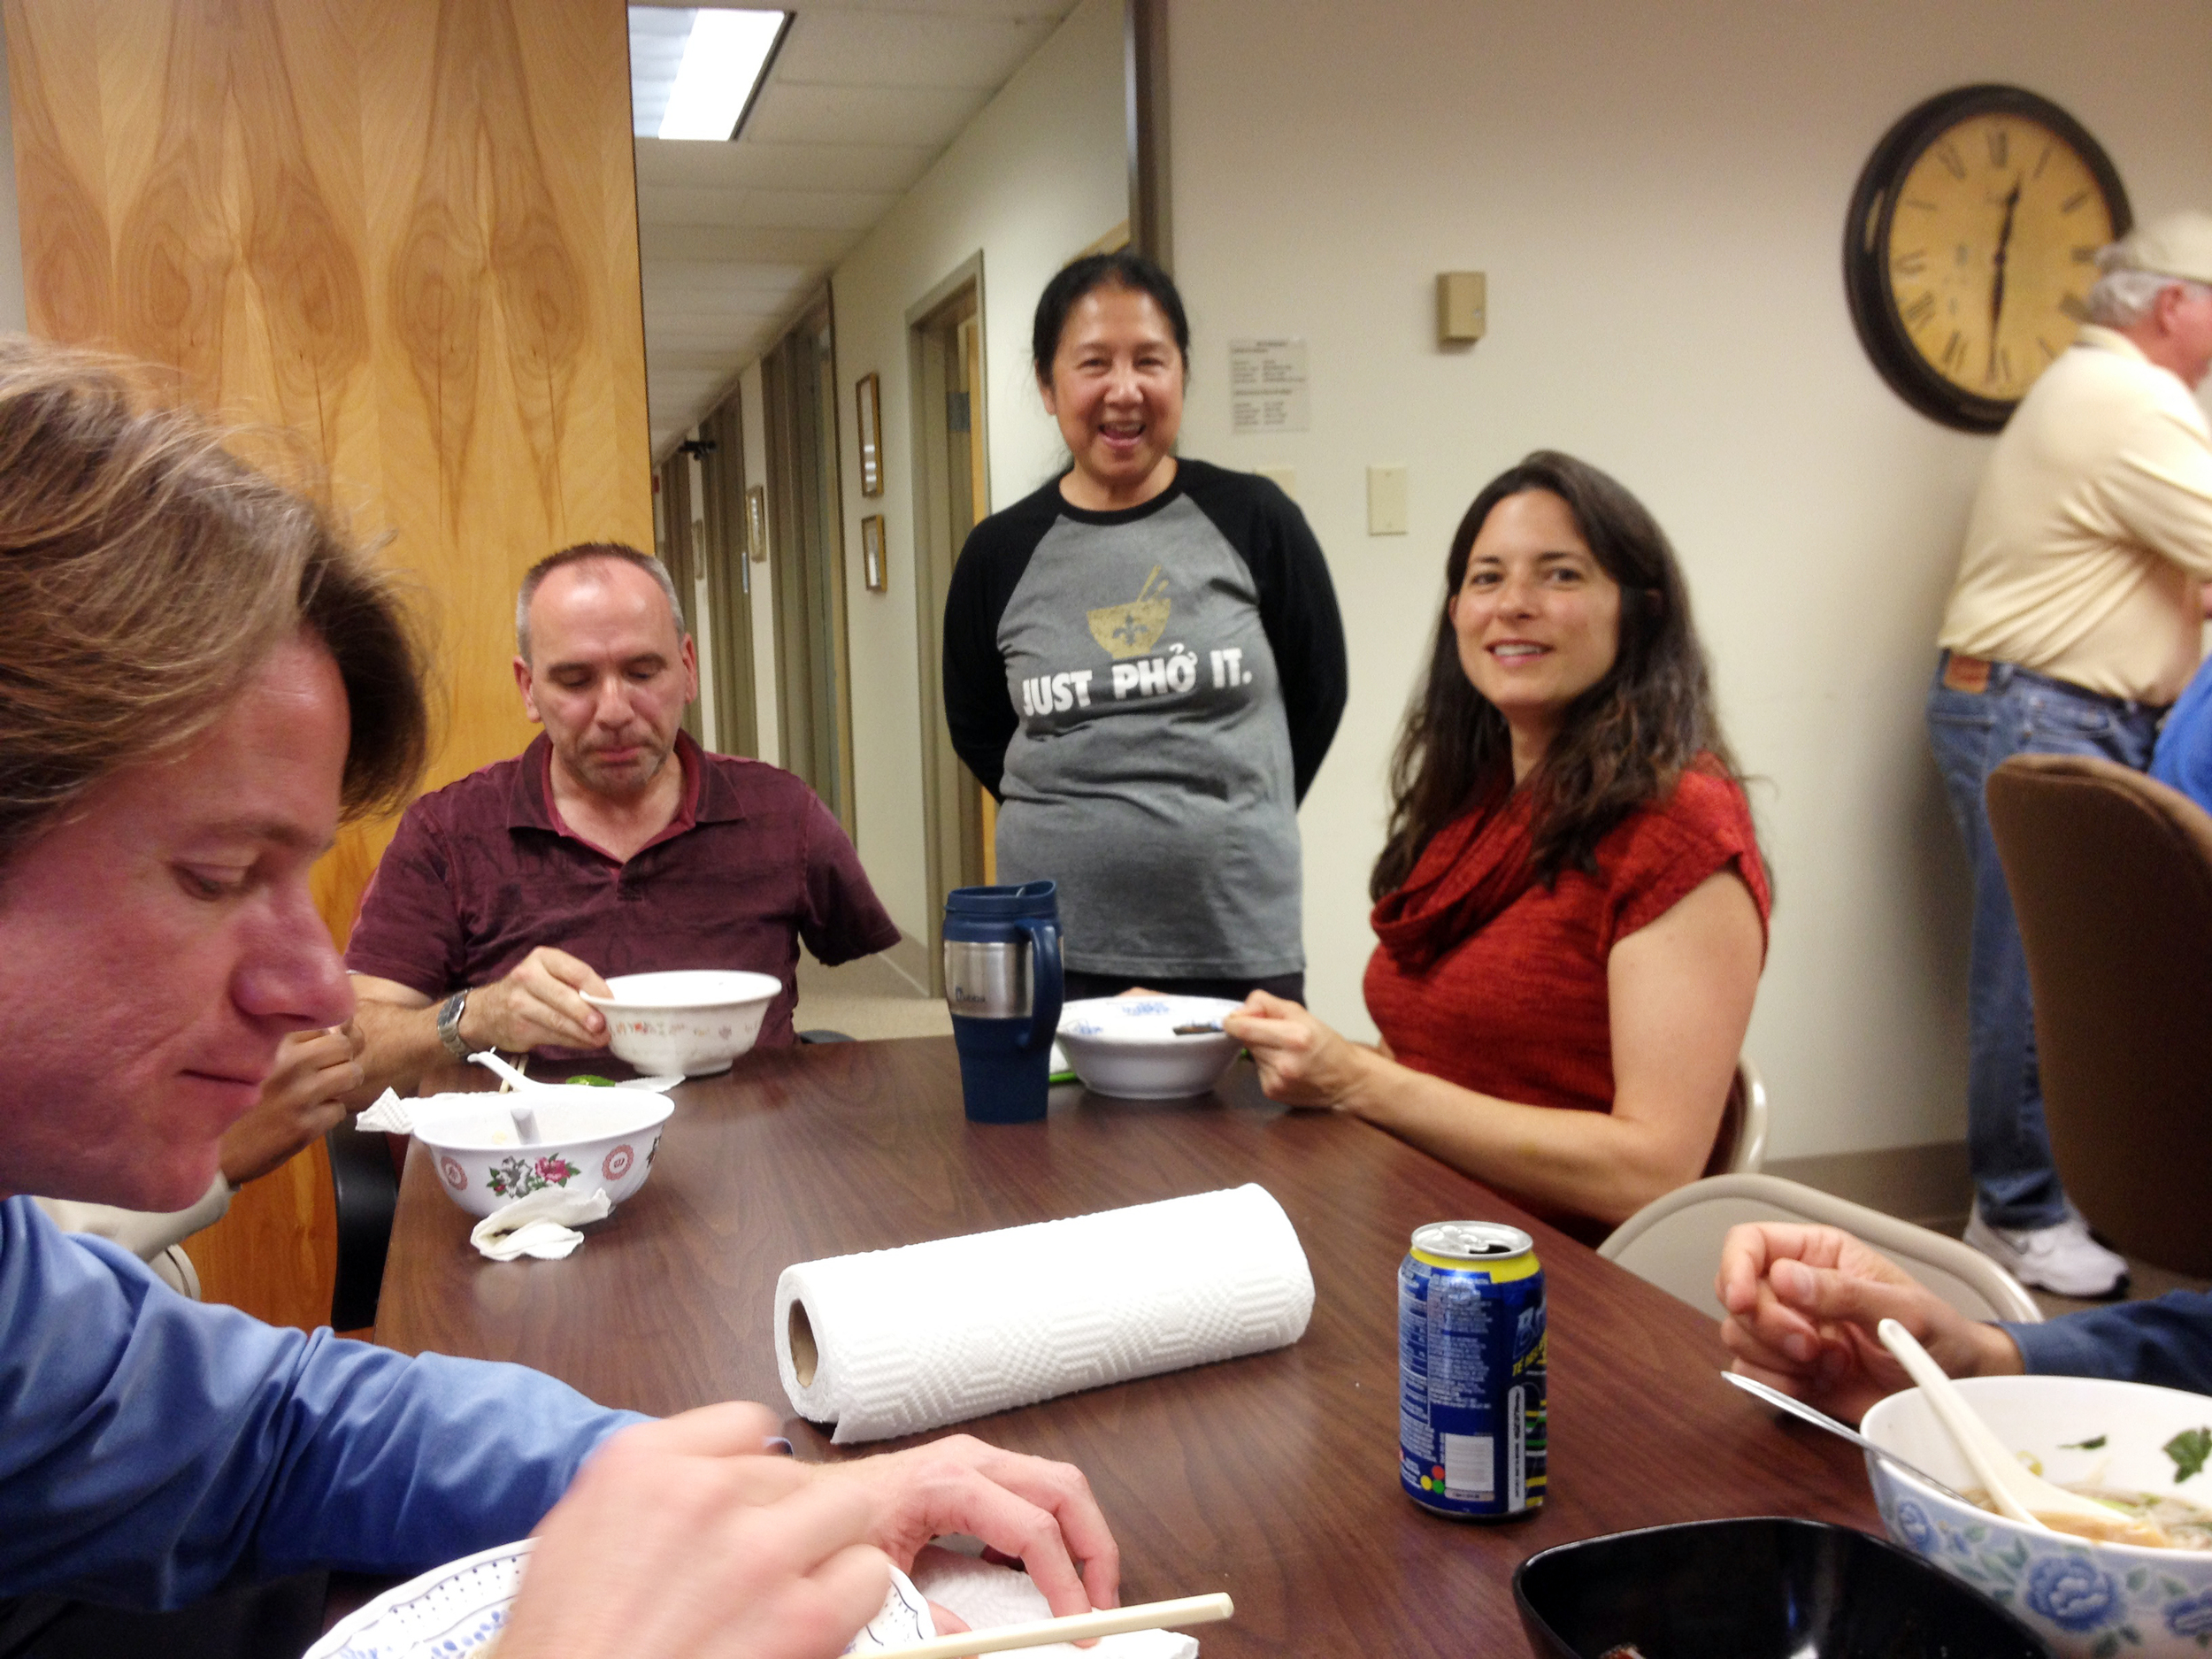 Infinity staff celebrate company and employee anniversaries with a pho lunch prepared by designer Phan Nguyen. From left, Bill Thomassie, Mike Laux, Phan Nguyen and Rachel Kenney.